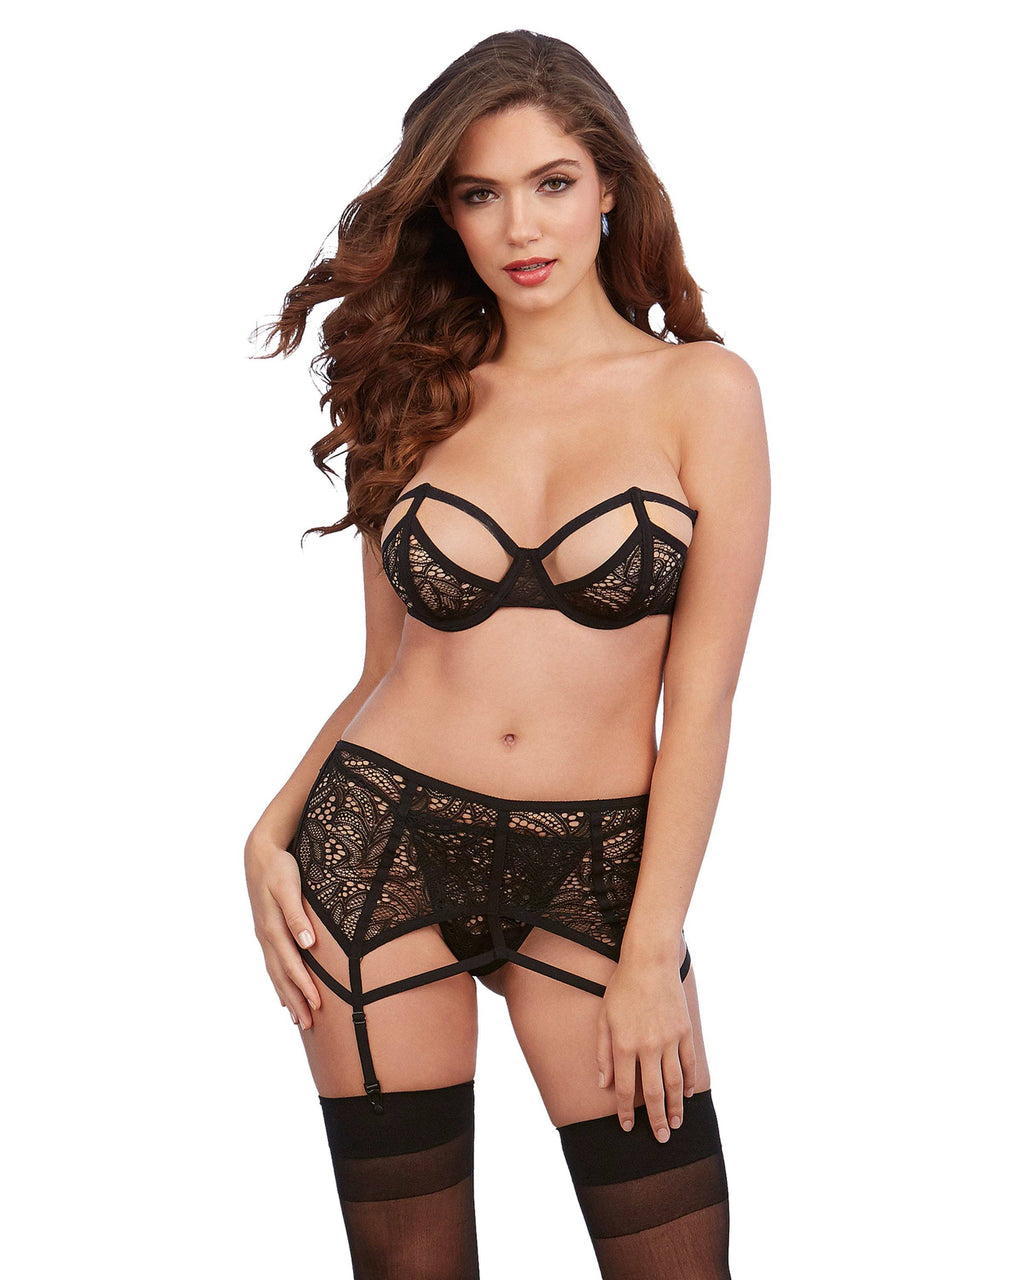 Stretch Lace 3-Piece Garter Set with Architectural Detailing Bra Set Dreamgirl International